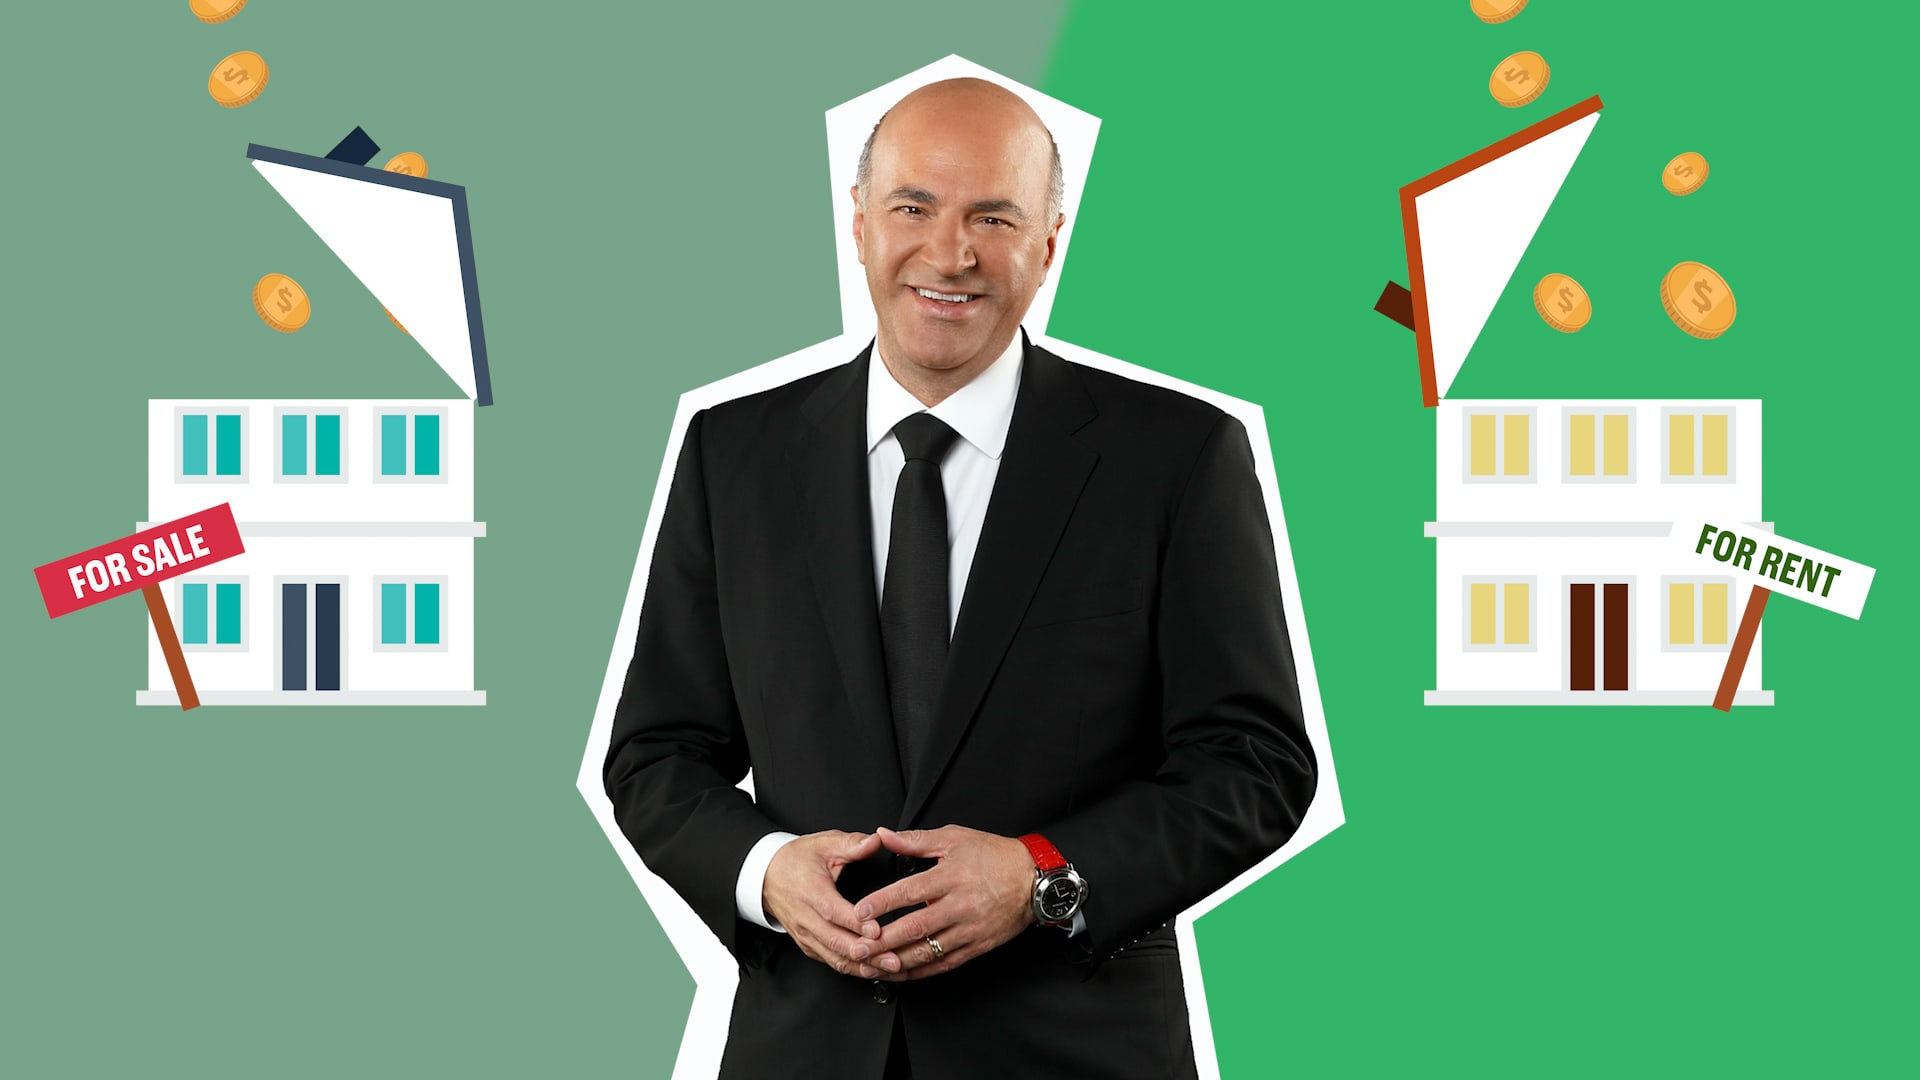 Kevin Oleary Pay Off Your Mortgage By This Age Baju Couple Hikaru You Me